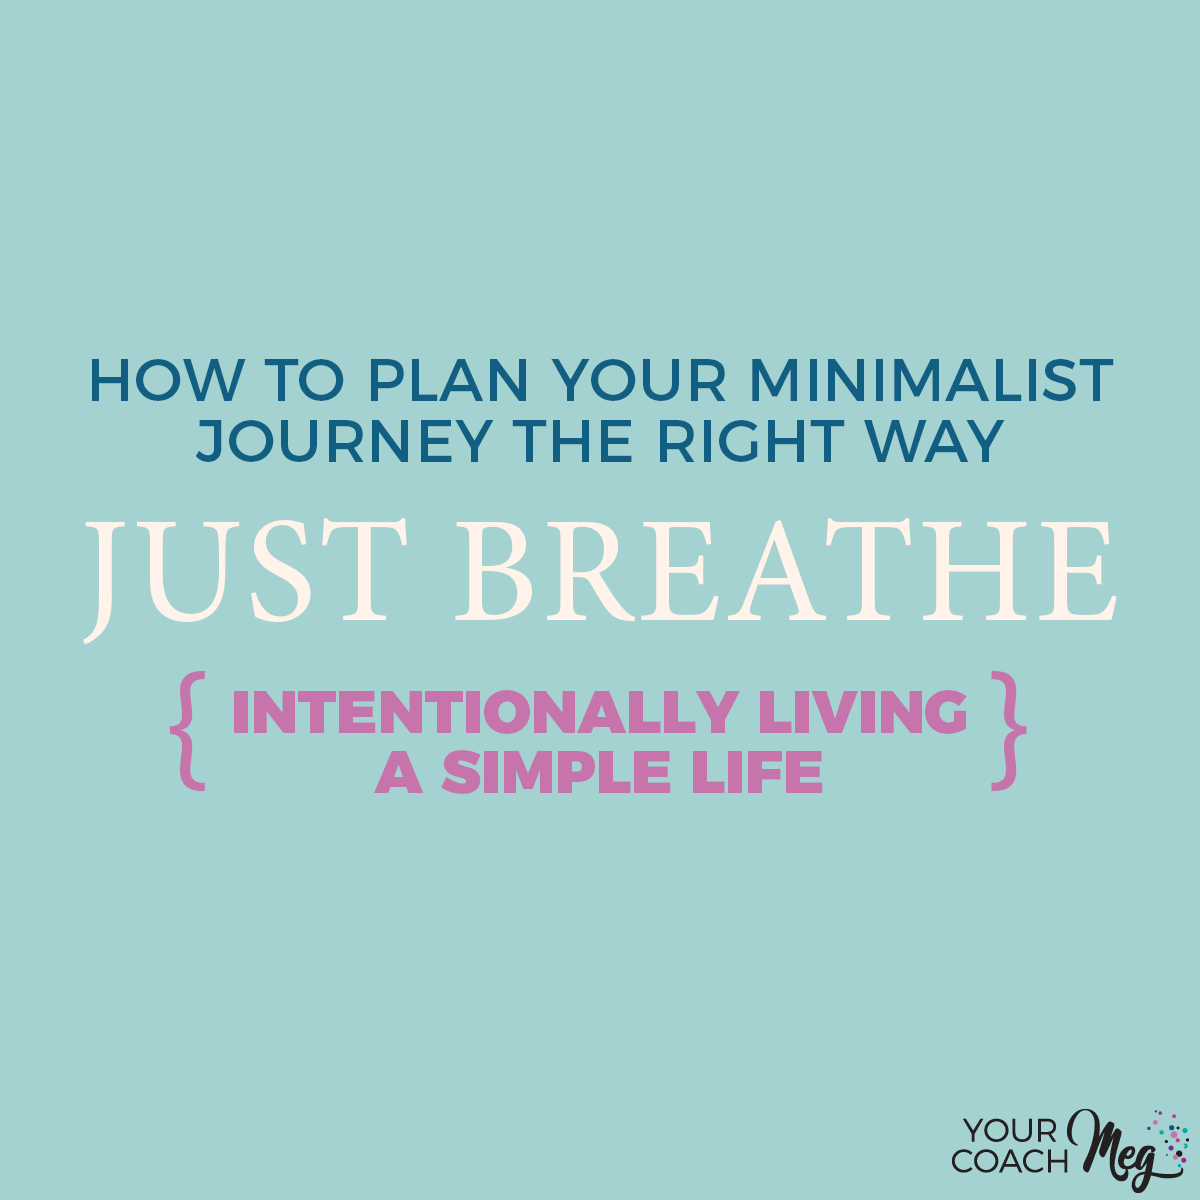 JUST BREATHE: Plan your minimalist journey the right way